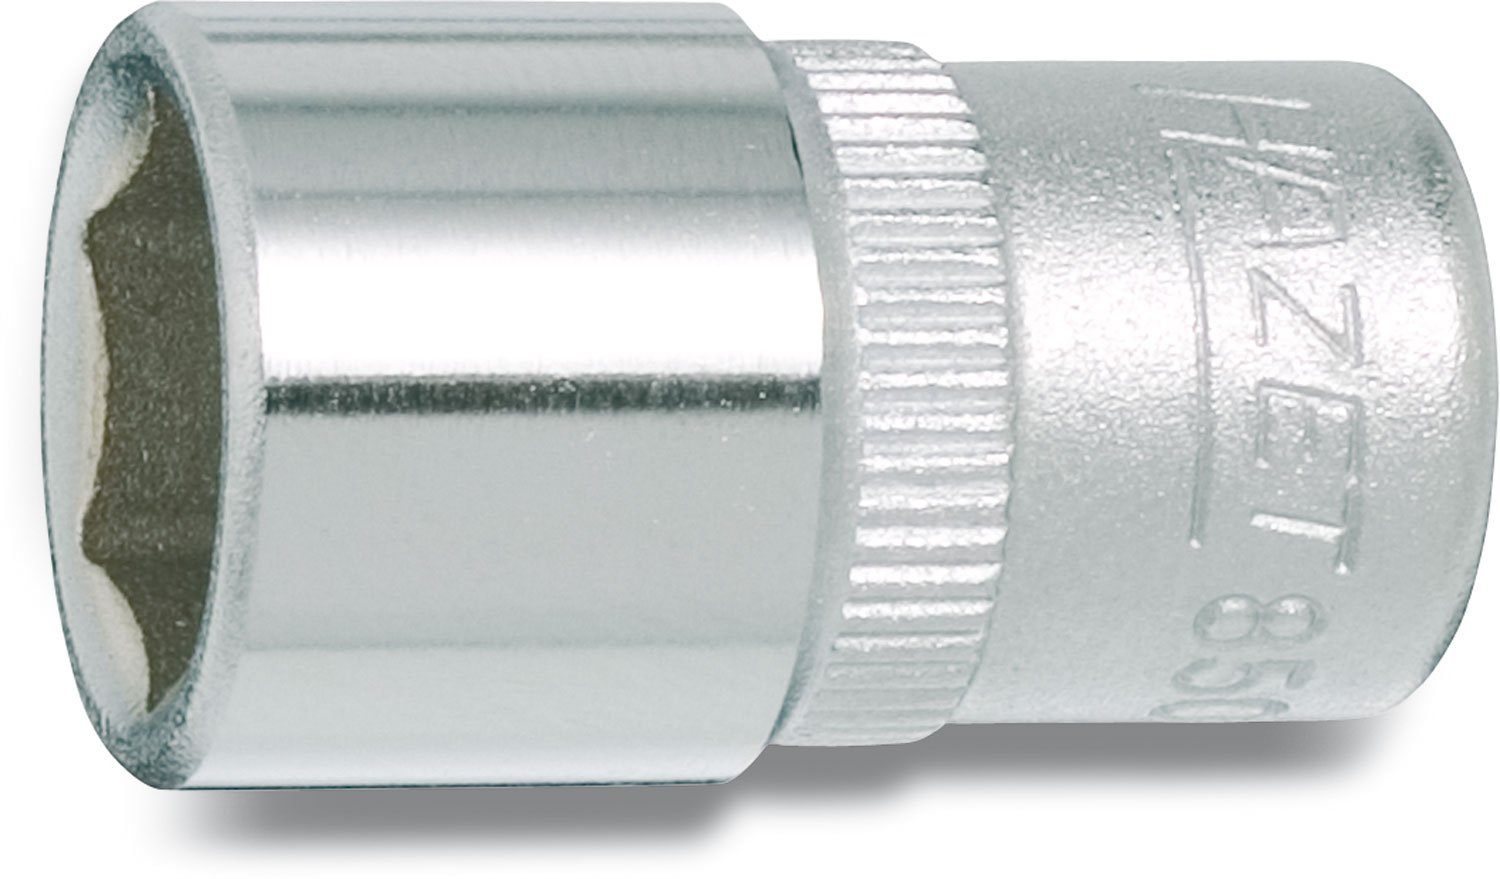 HAZET 850-5 25 mm 6-Point Hexagon Traction Profile Socket Chrome-Plated//Polished